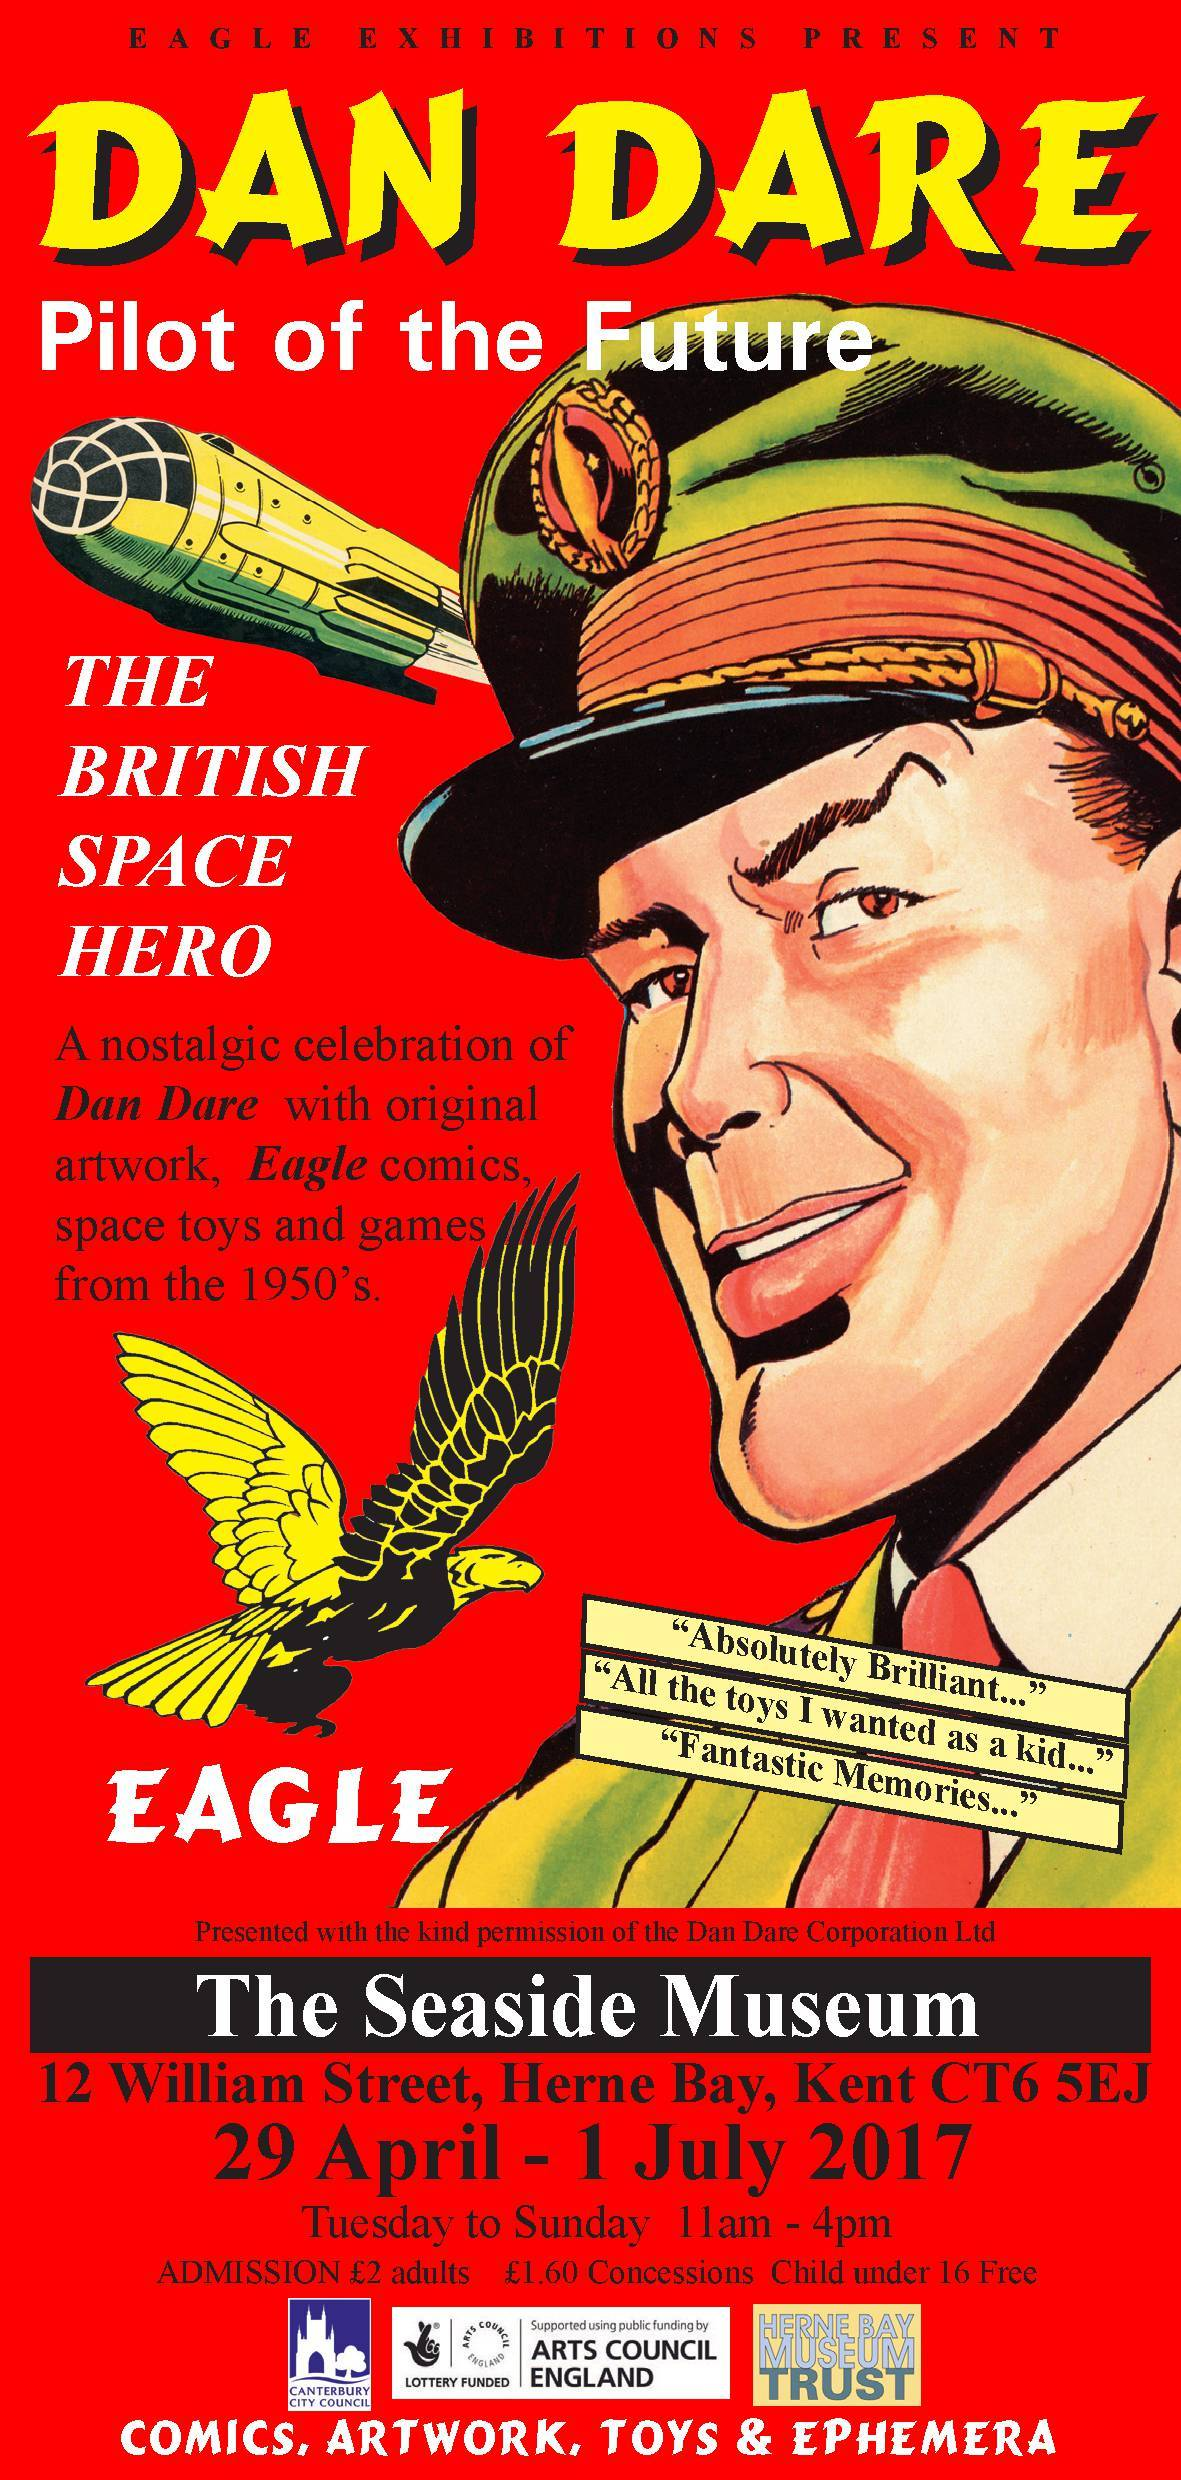 Dan Dare Exhibition Poster - The Seaside Museum 2017